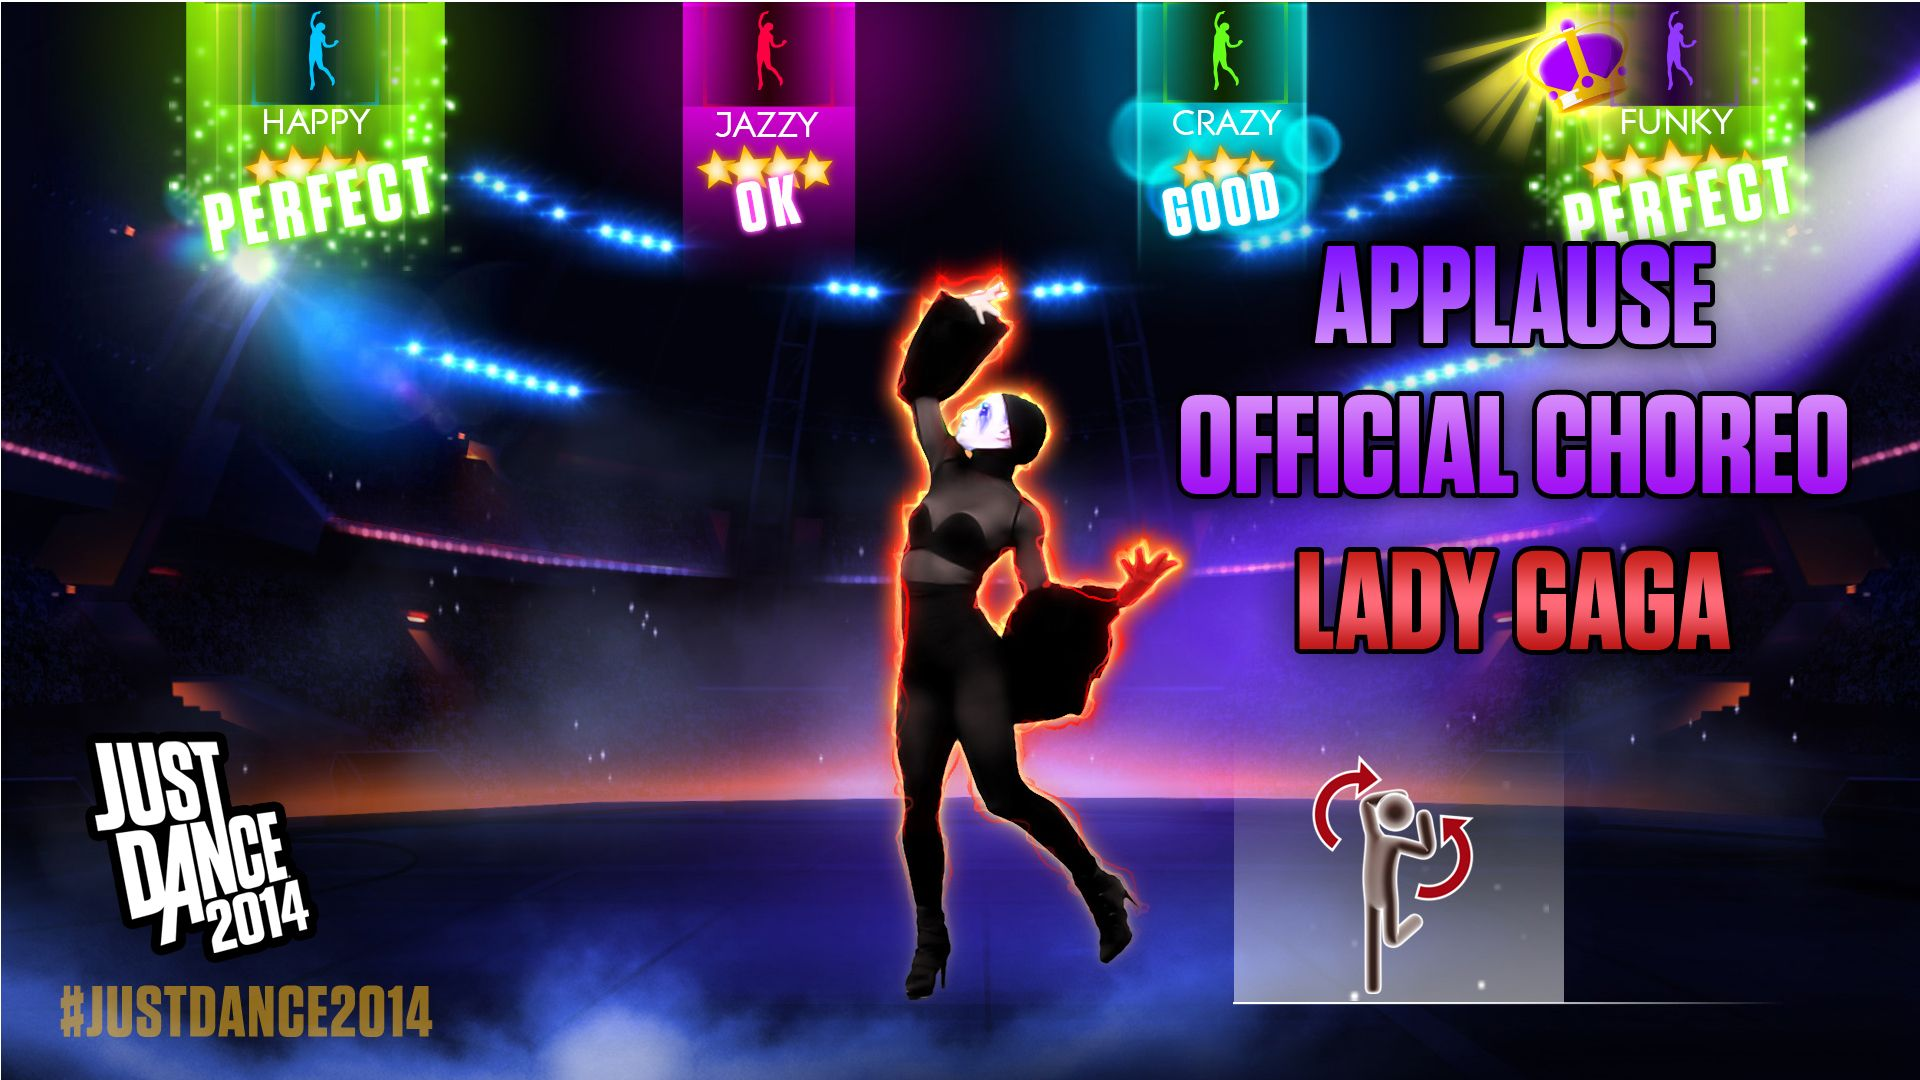 Applause official choreography by lady gaga is available